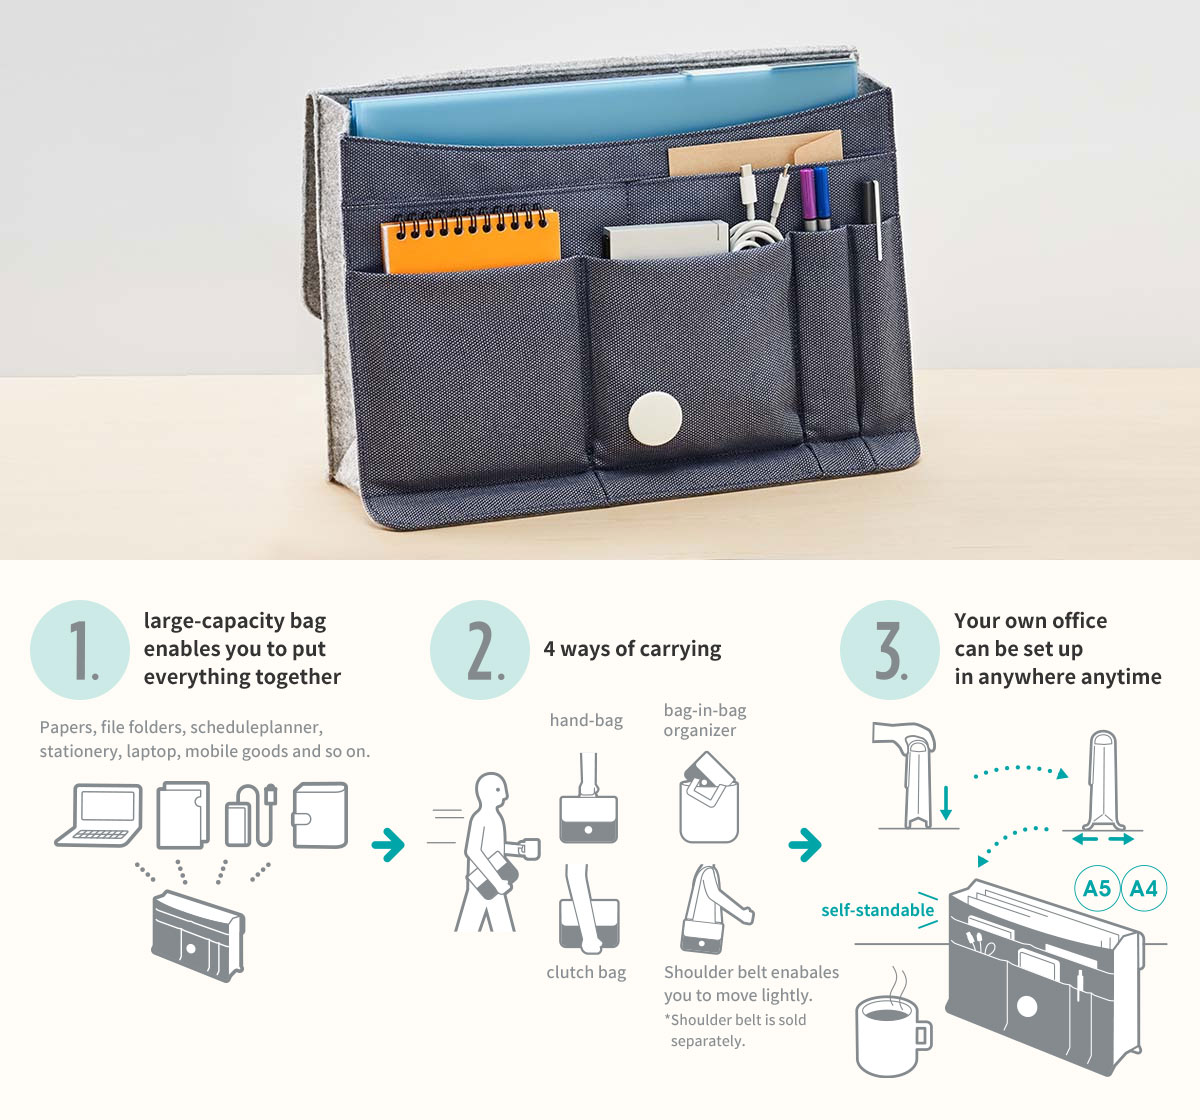 1.large-capacity bag enables you to put everything together 2.4 ways of carrying 3.Your own office can be set up in anywhere anytime